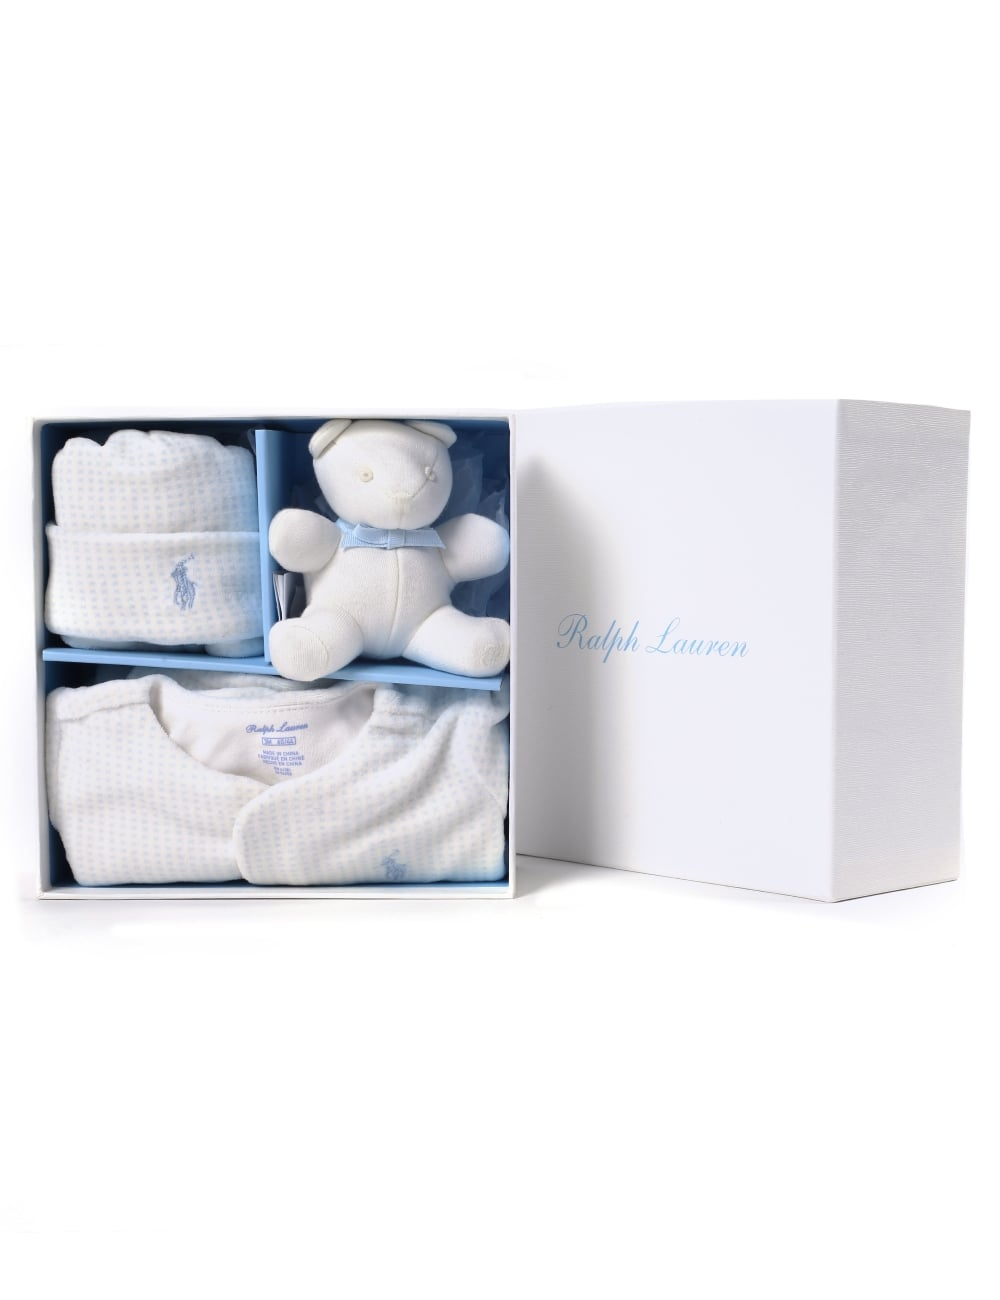 Ralph Lauren Baby Gift Box Set : Polo ralph lauren baby boy piece gift box